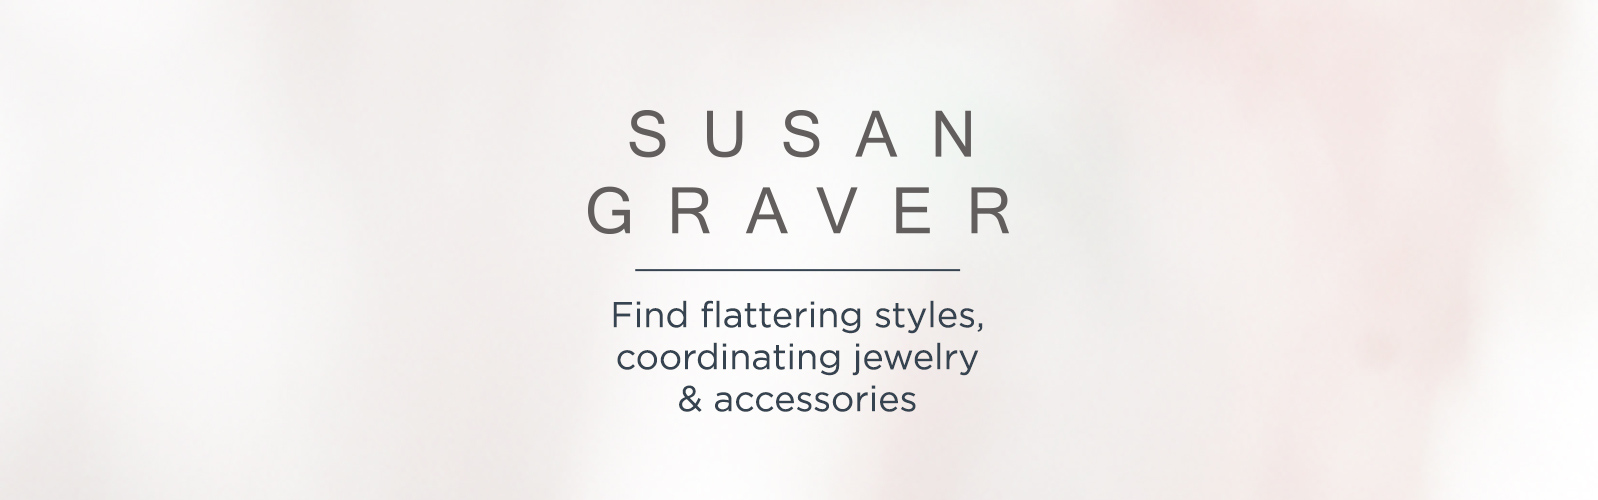 Susan Graver Fashion, Find flattering styles, and coordinating jewelry & accessories